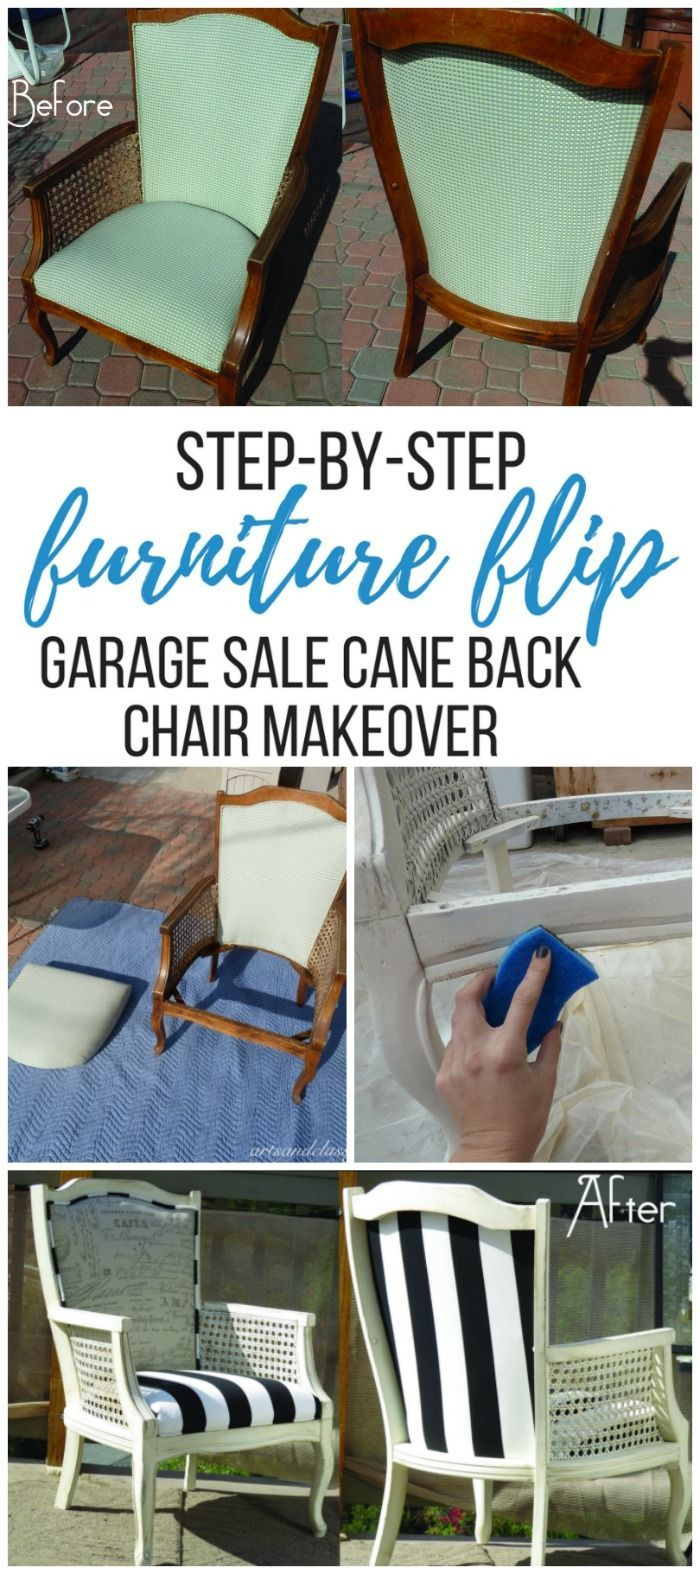 I wanted to share with you the step by step tutorial on this lovely Cane Back Chair project I did. This is by far my favorite project I have tackled yet, and I am excited to share with you the step by step process.